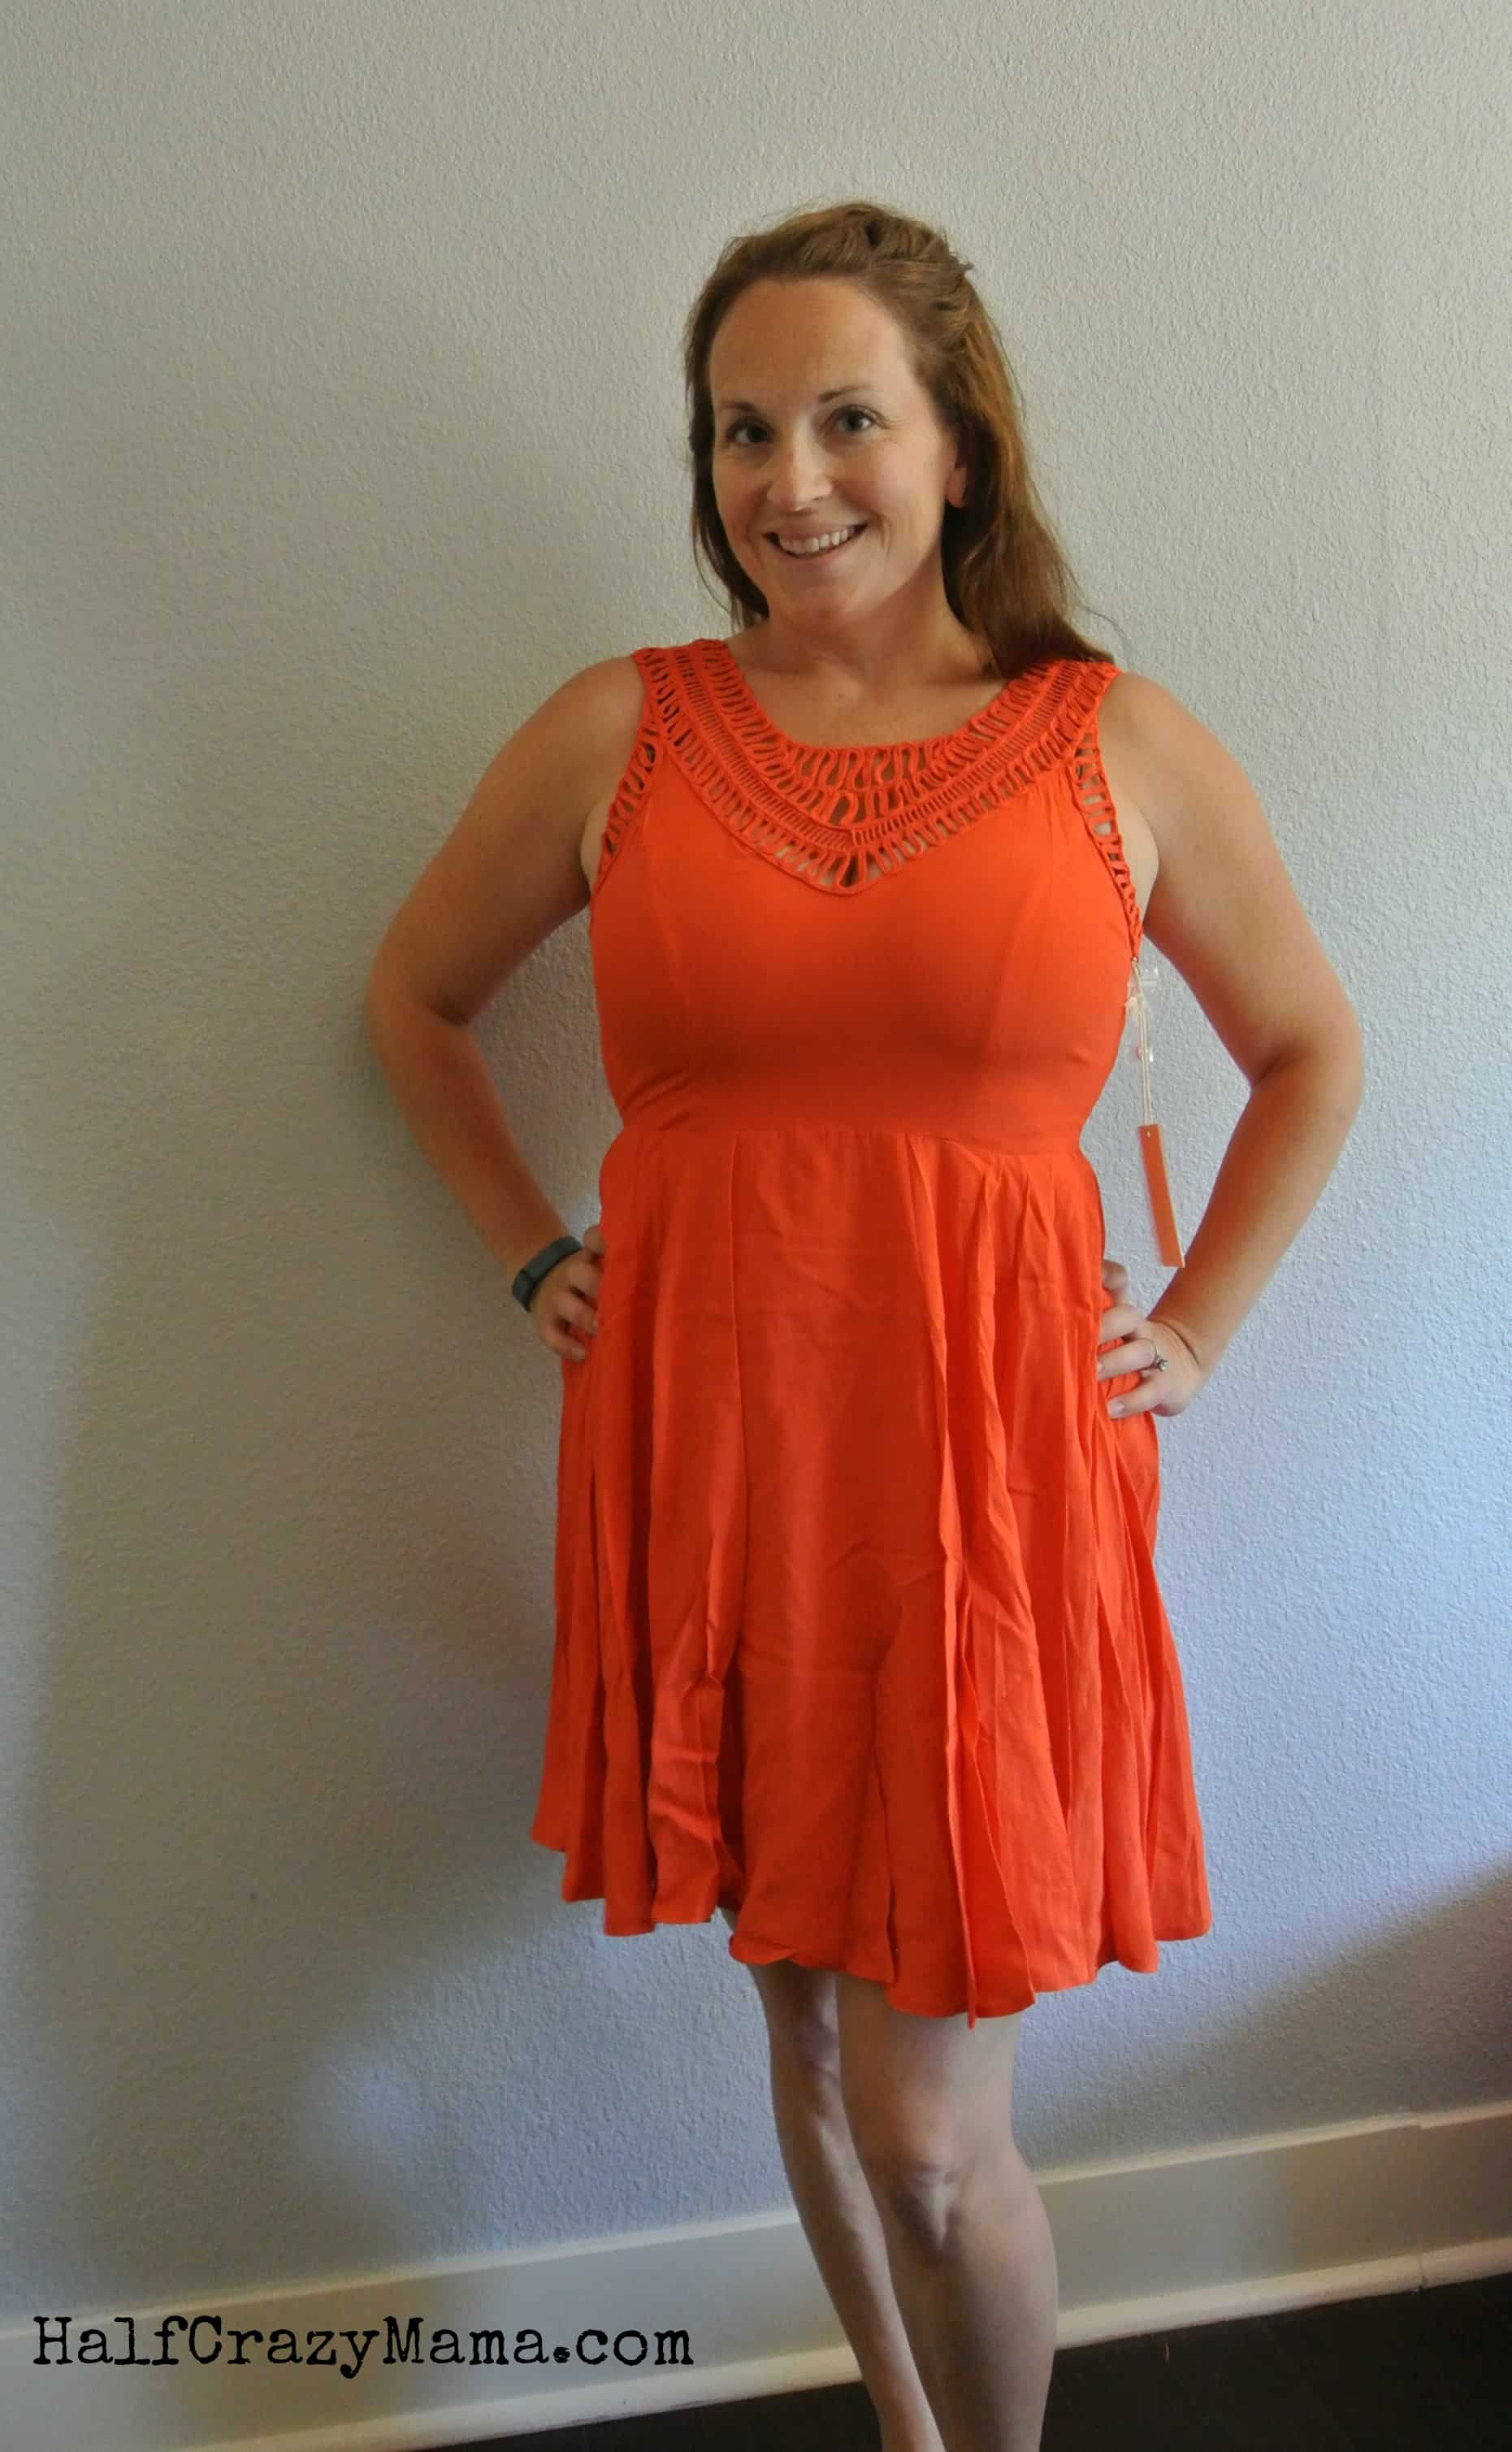 Stitch Fix 3 orange dress